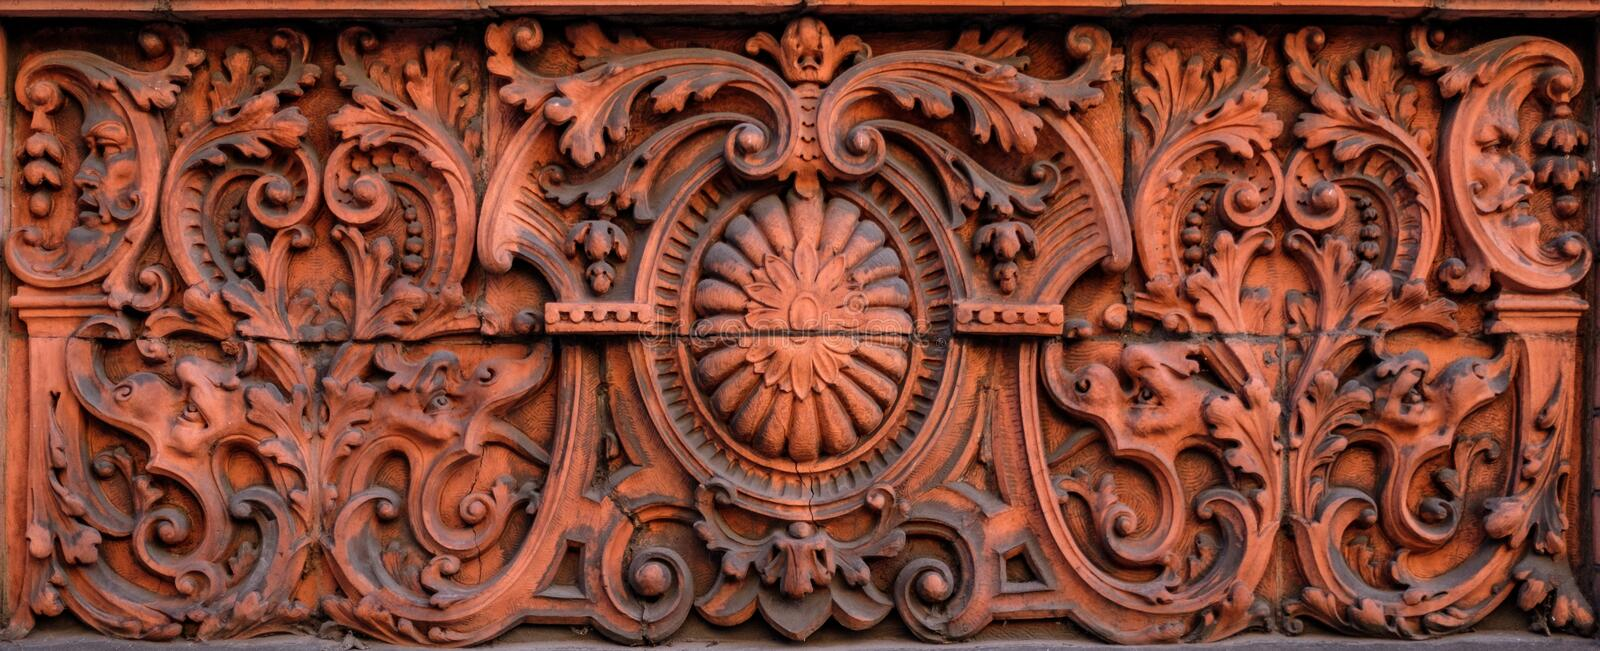 Decorative Facing Stone Carving royalty free stock photography